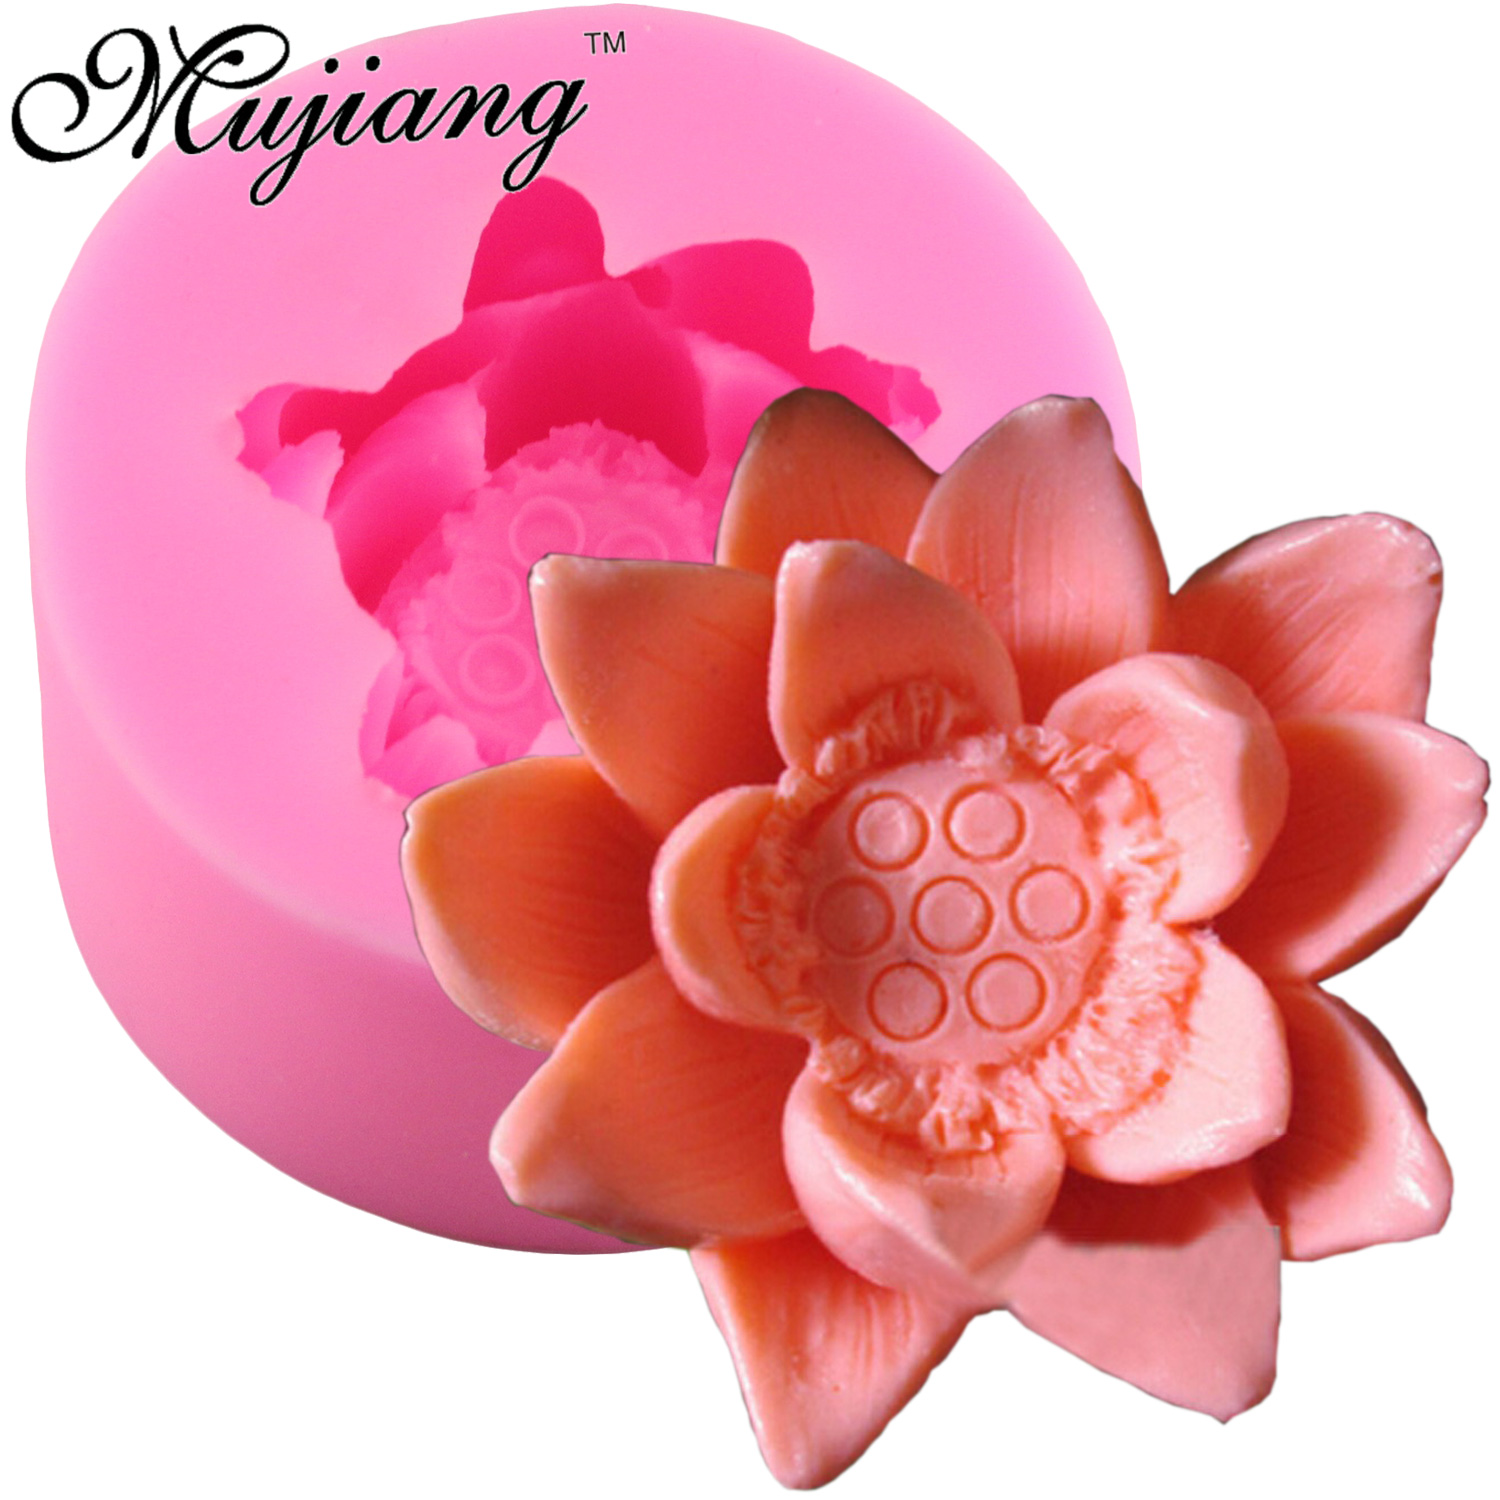 Clay lotus flower promotion shop for promotional clay lotus flower mujiang lotus flower silicone soap molds resin clay candle mold fondant cake decorating tools candy chocolate gumpaste moulds dhlflorist Gallery